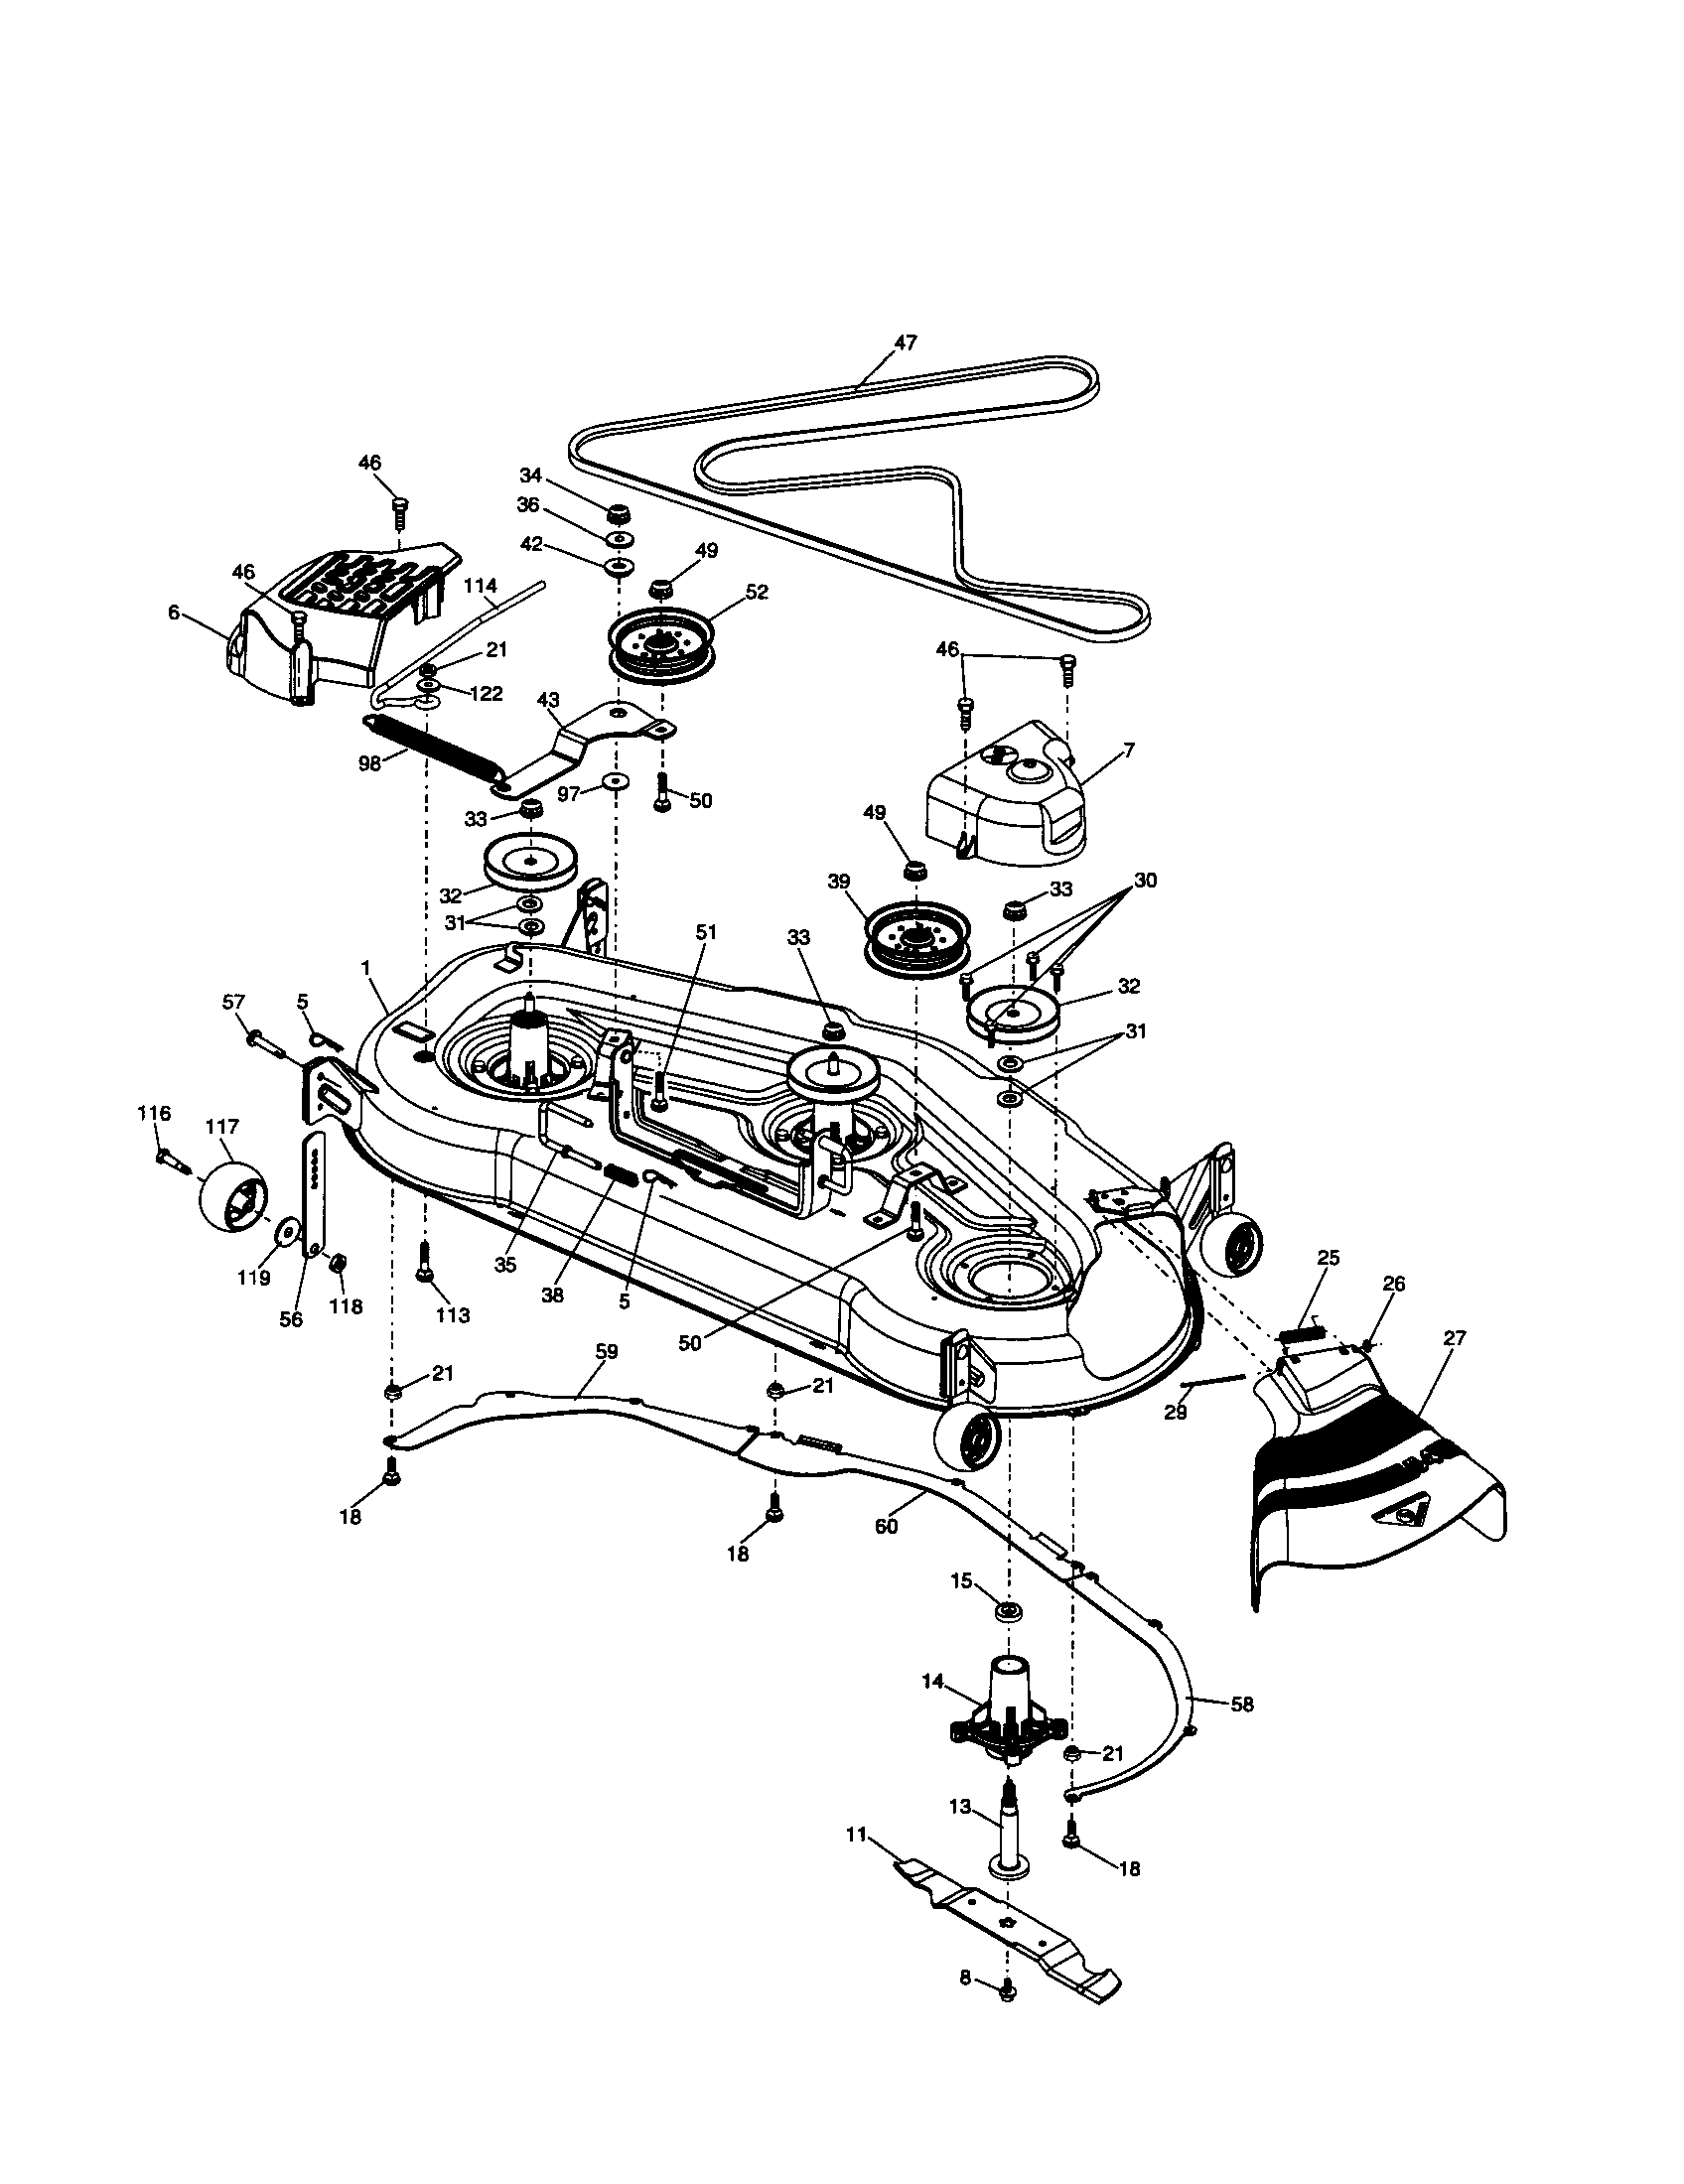 Honda Hrr2162tda Mower Parts Diagram. Honda. Auto Wiring